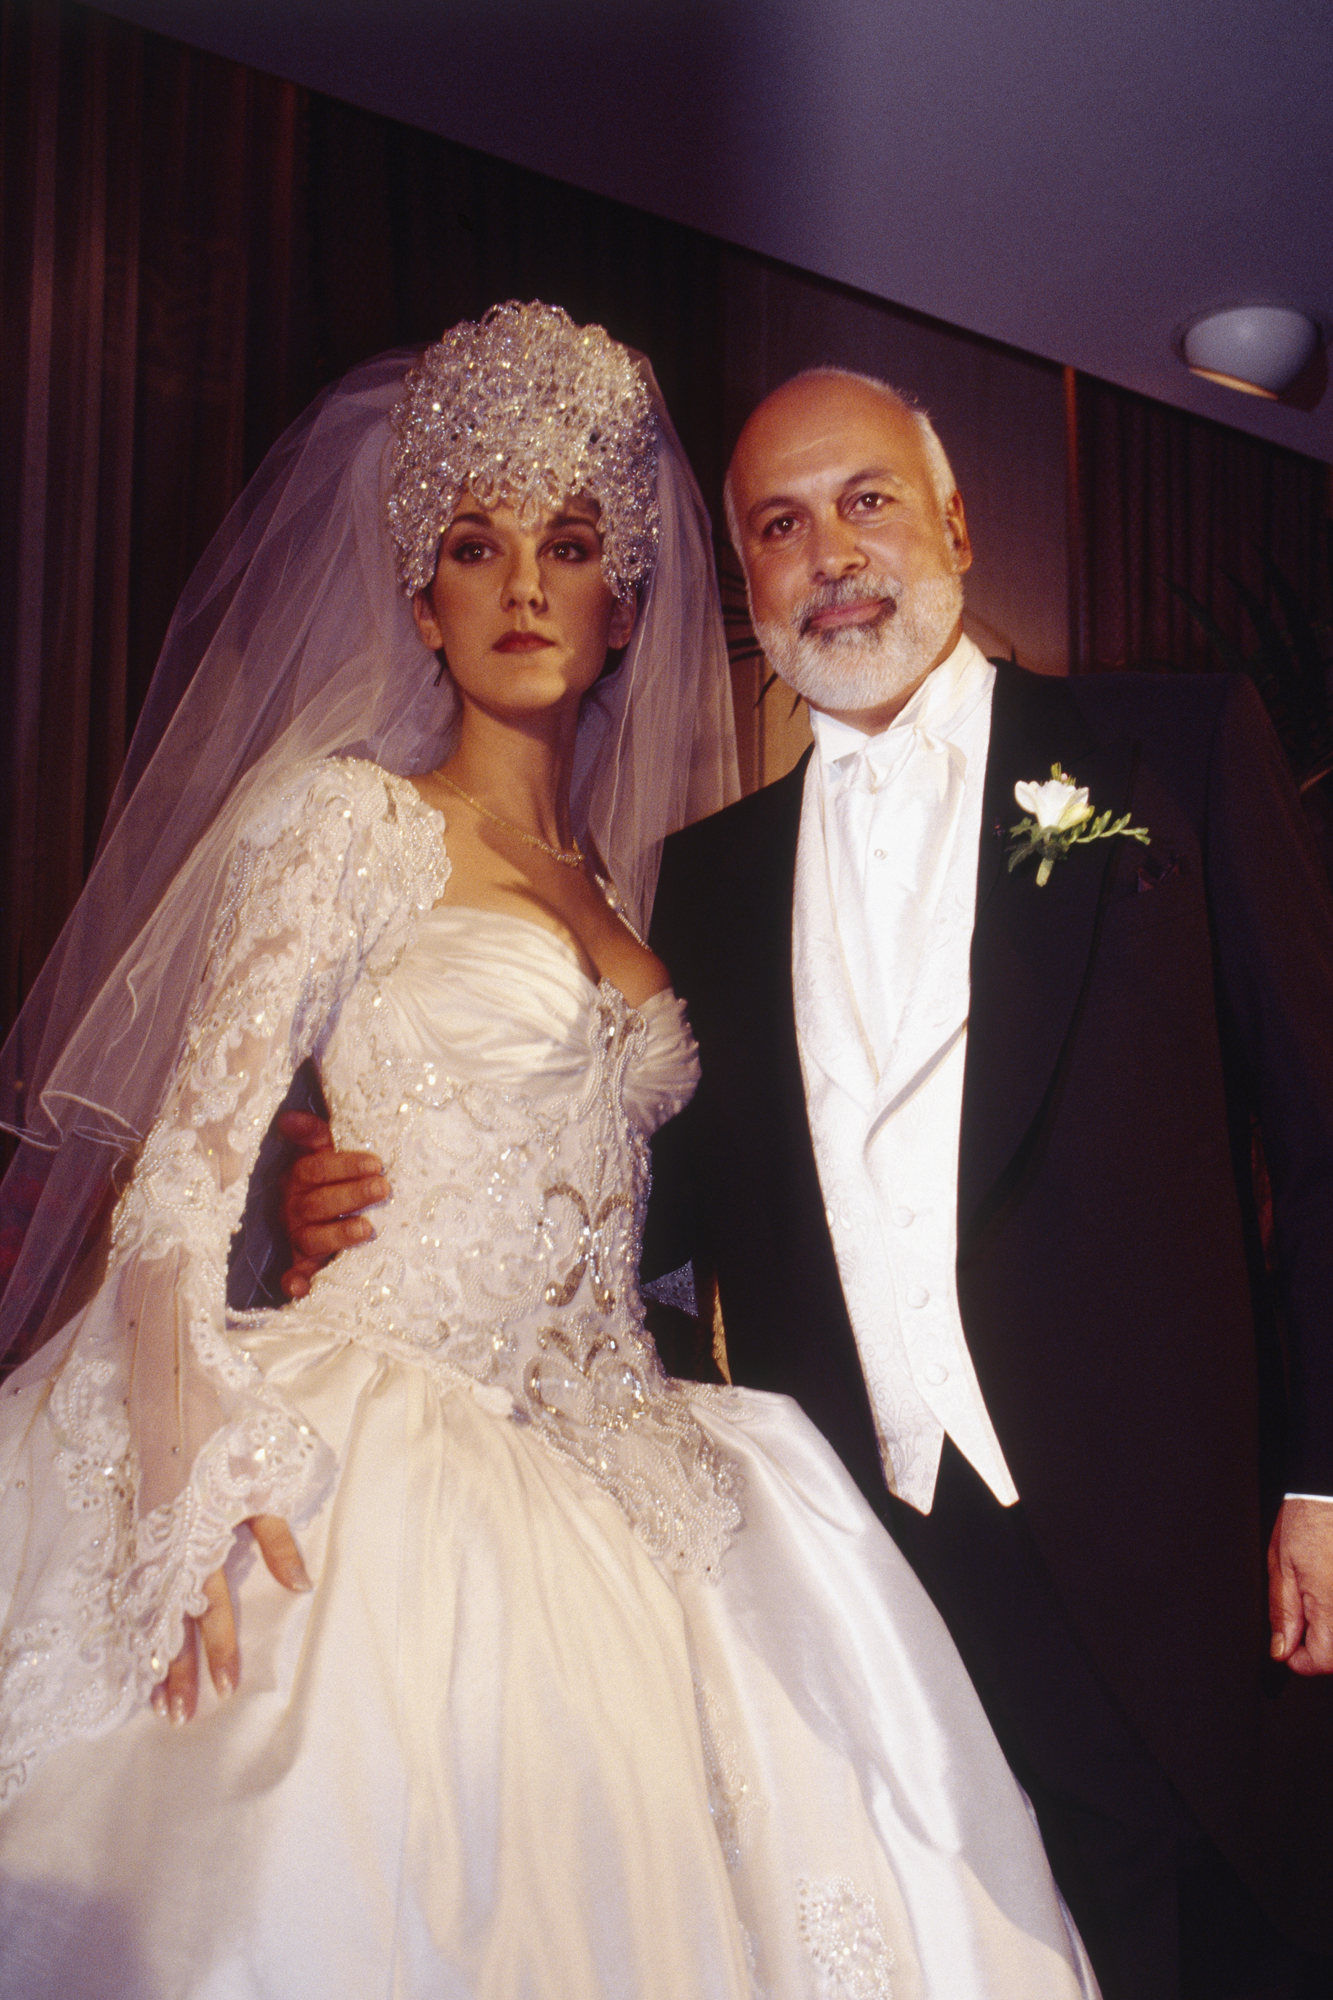 celine-dion-wedding-1-2000.jpg